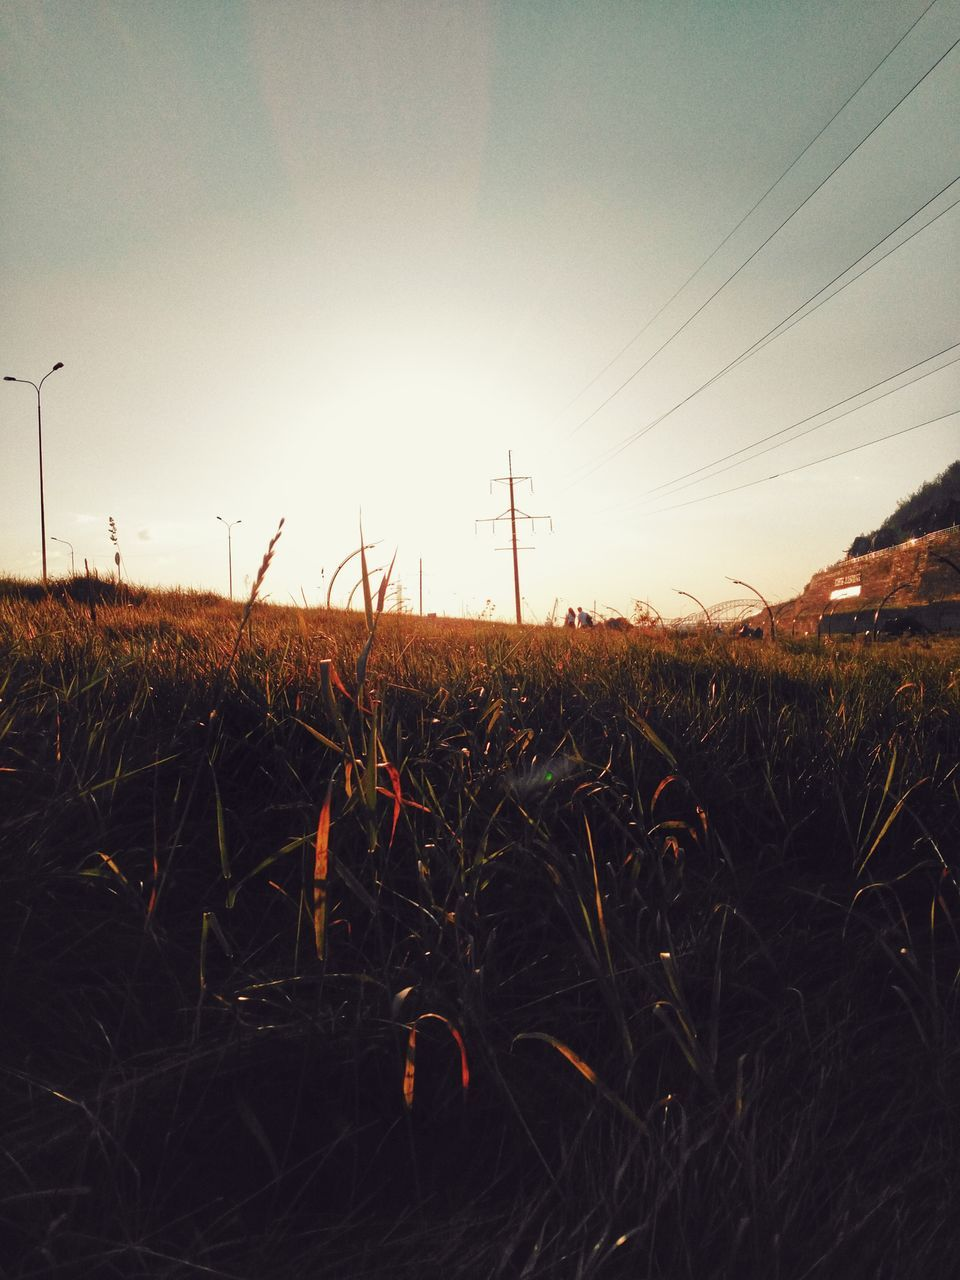 grass, field, cable, electricity, sunset, landscape, nature, no people, sky, electricity pylon, tranquility, beauty in nature, technology, outdoors, growth, scenics, wind turbine, day, wind power